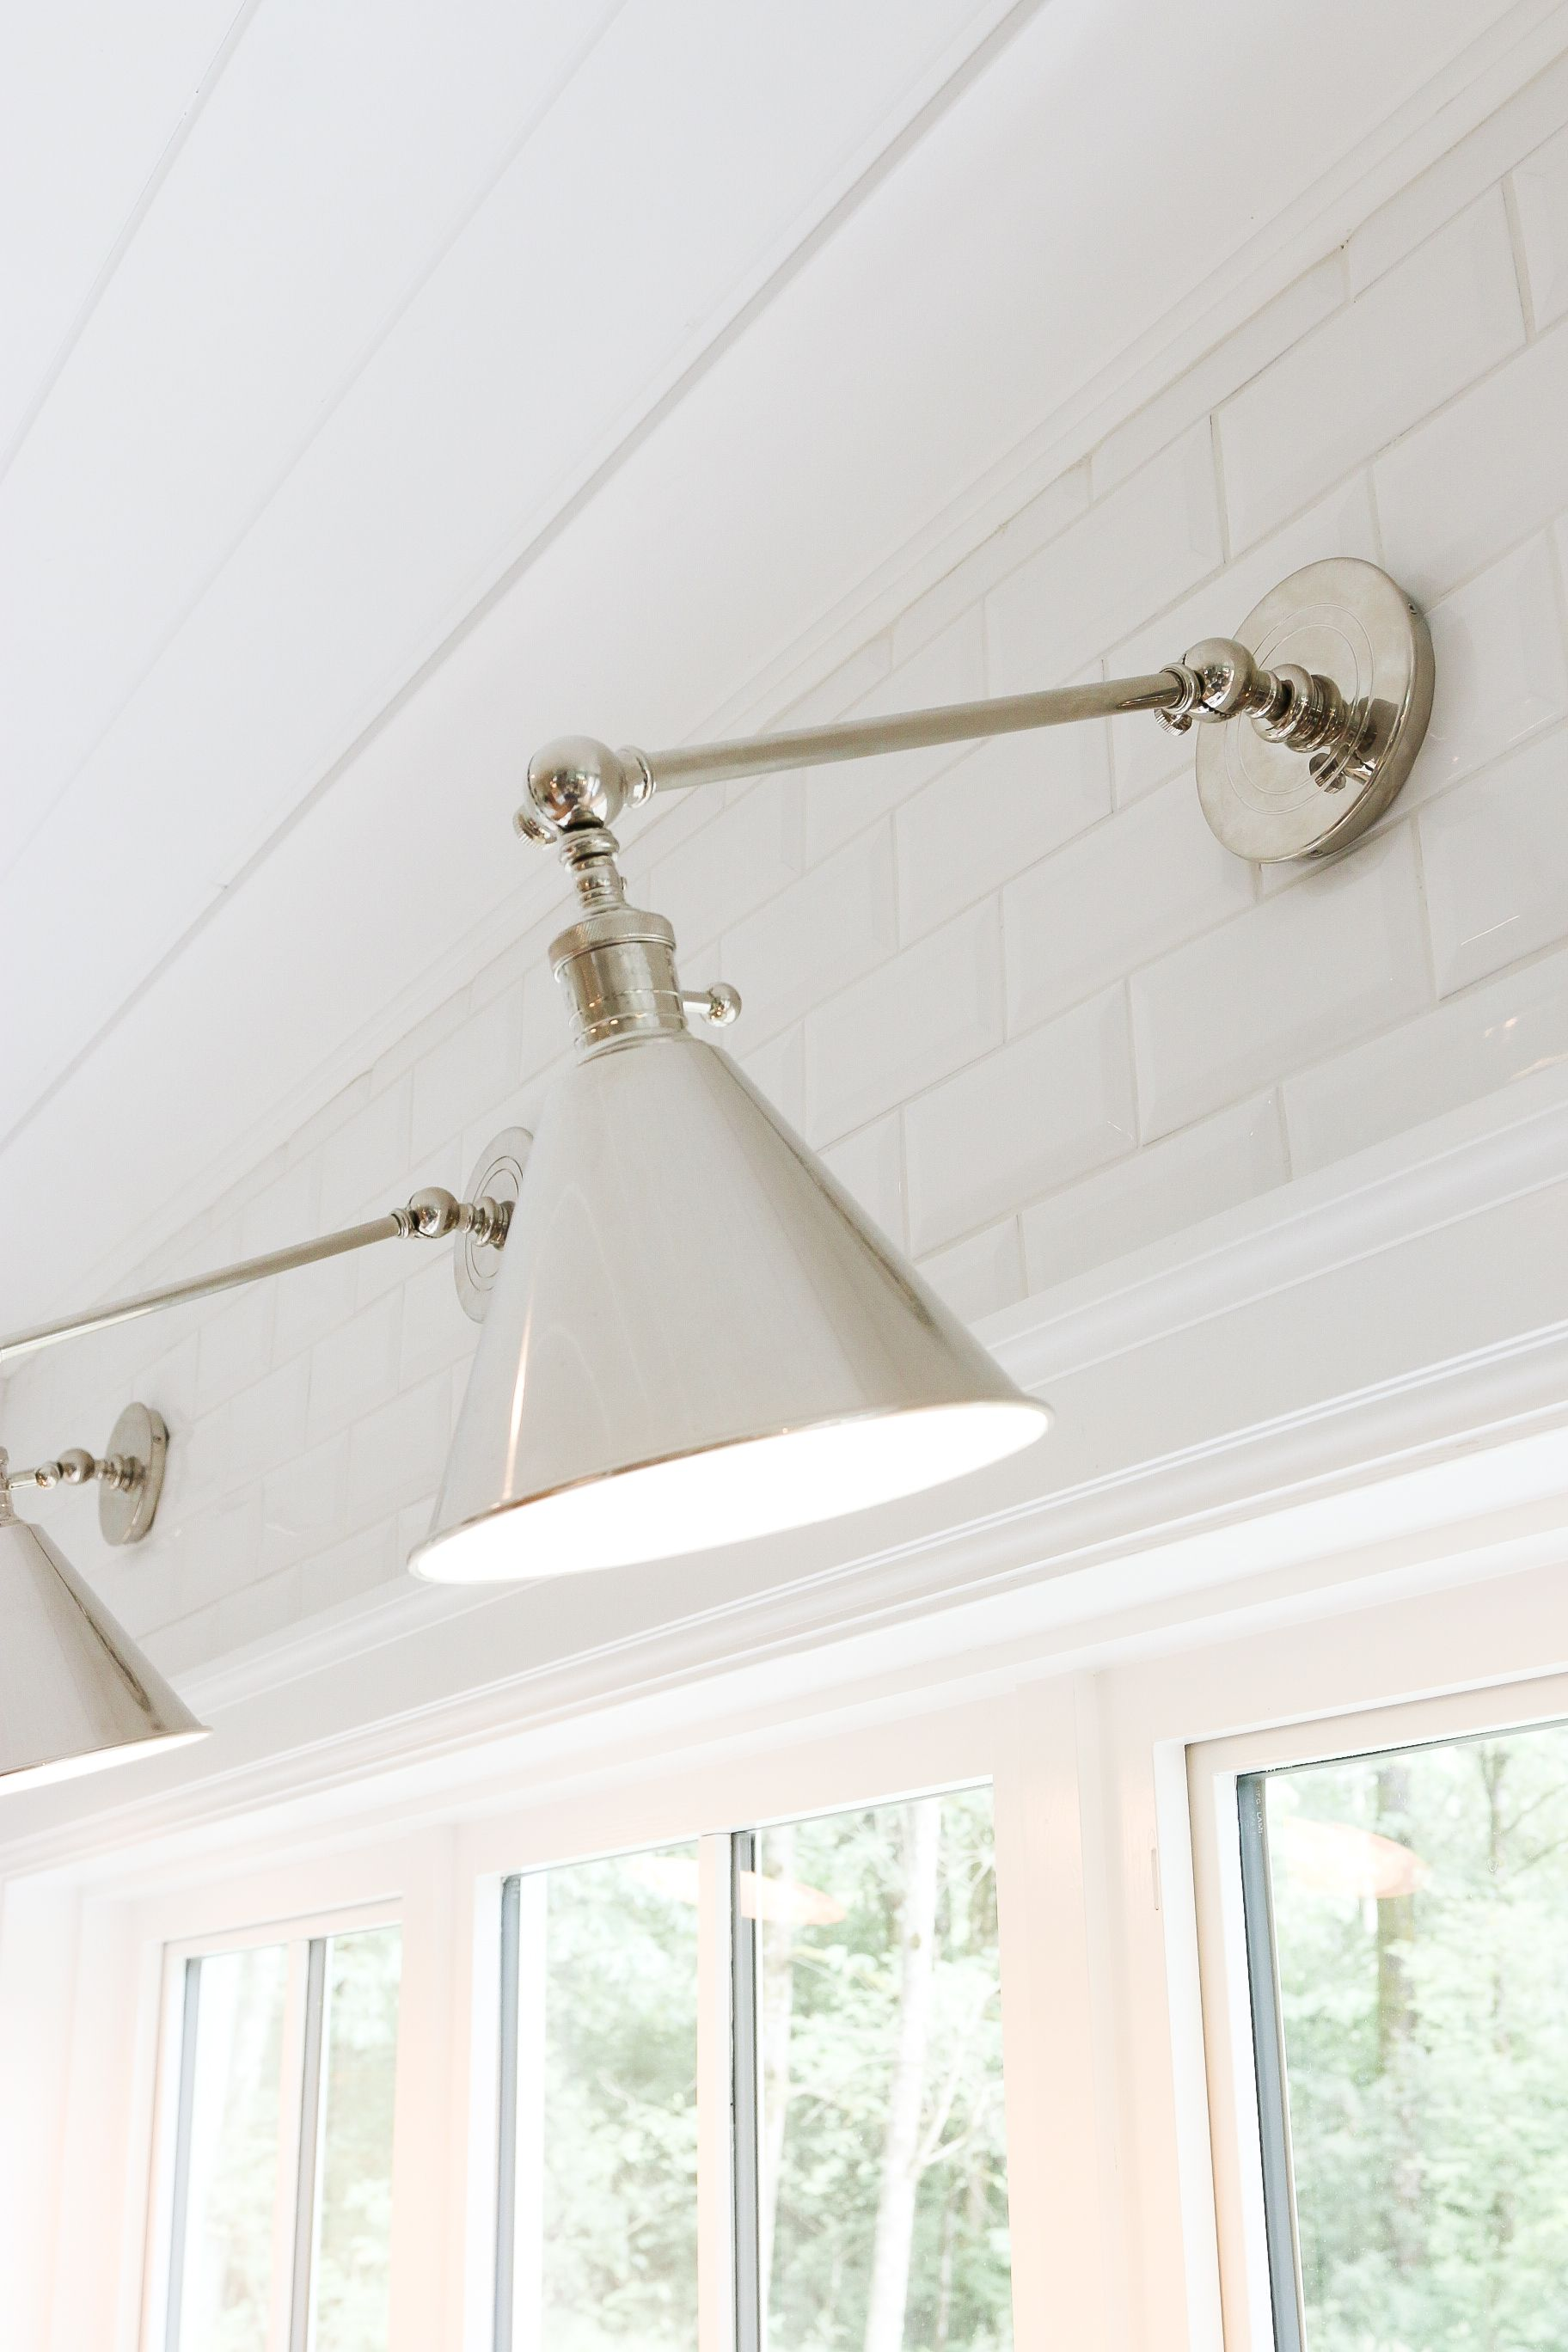 Monika hibbs boston functional single arm library light by ef monika hibbs boston functional single arm library light by ef chapman in polished nickel available at circalighting aloadofball